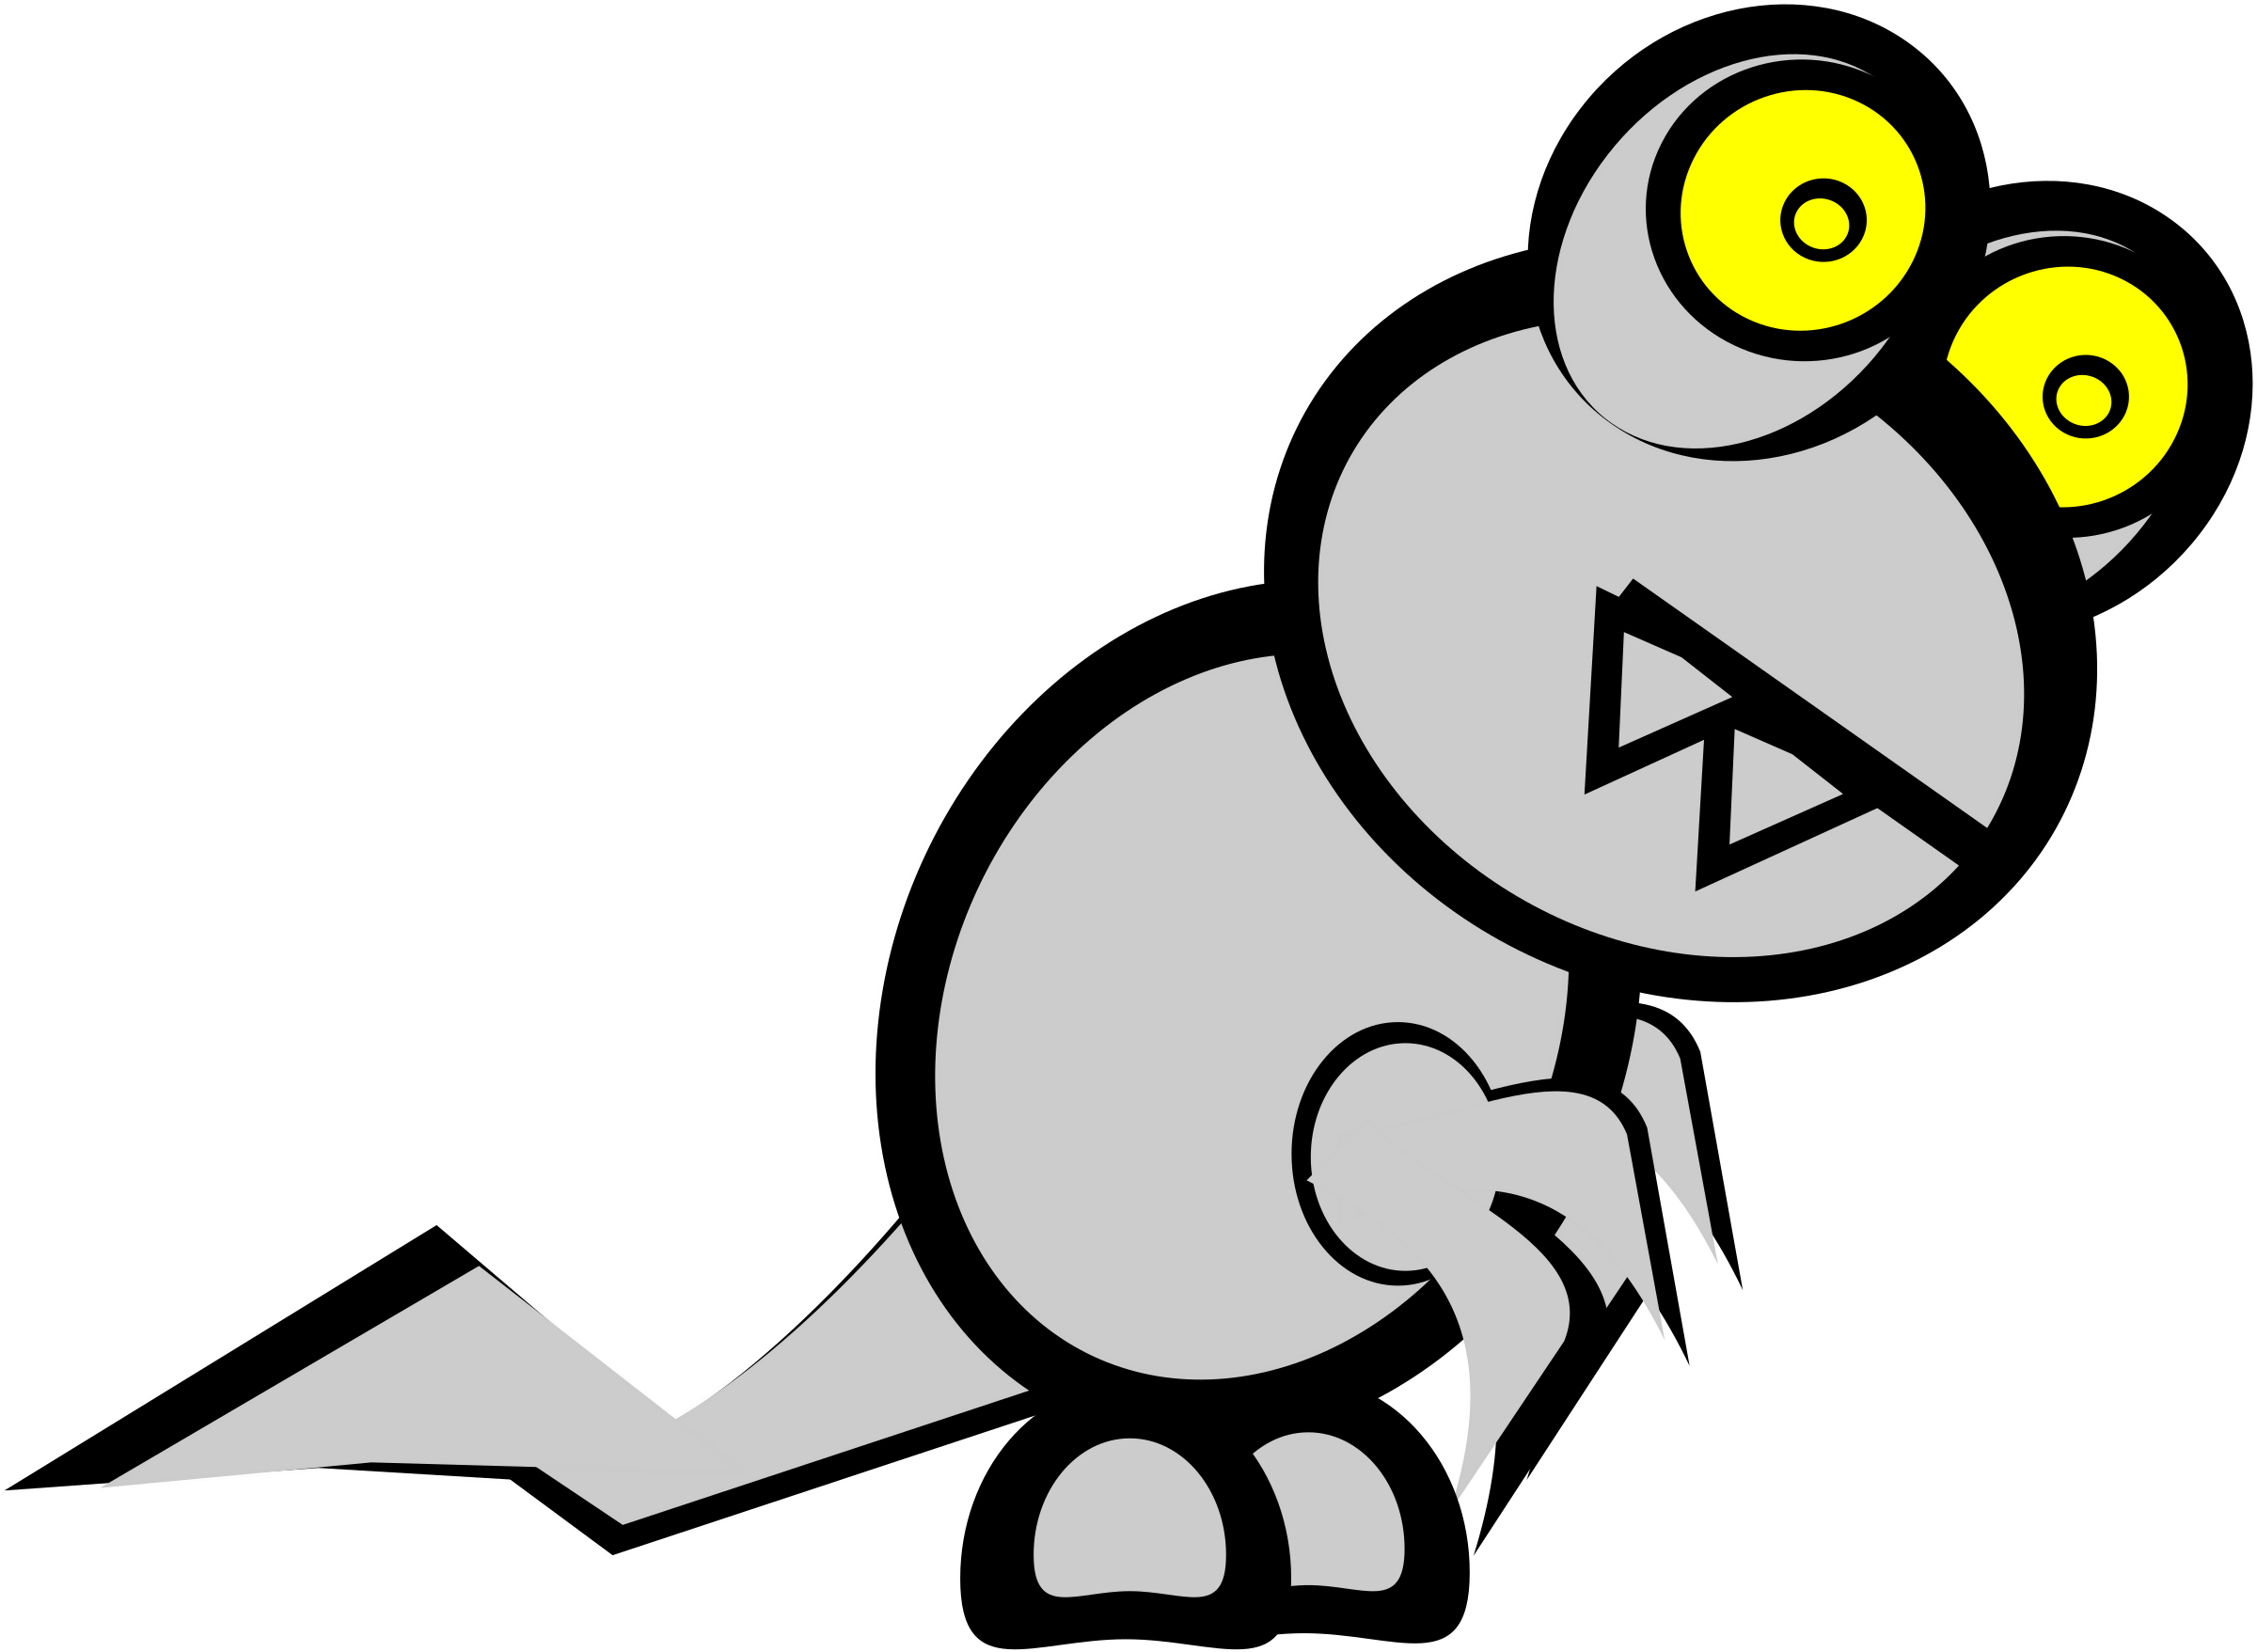 robosaur by PeterBrough